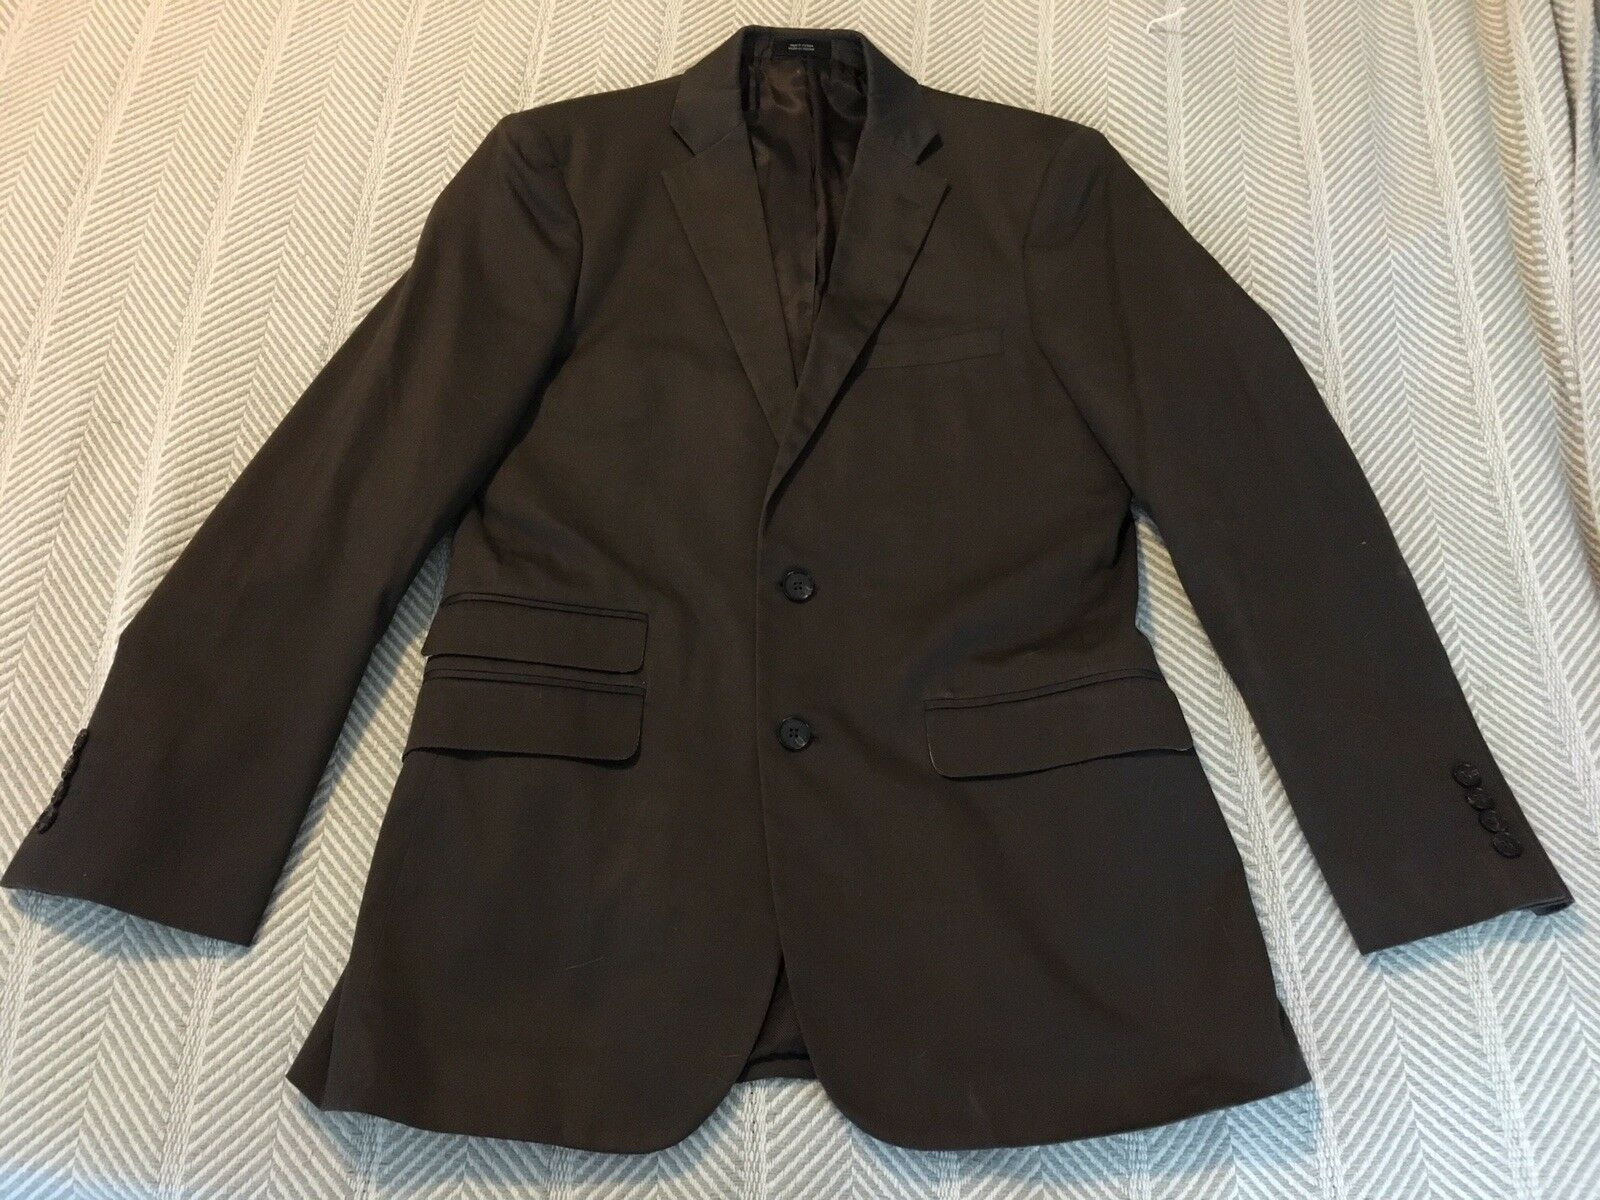 J Ferrar Modern Fit Brown Blazer Size 36 XS